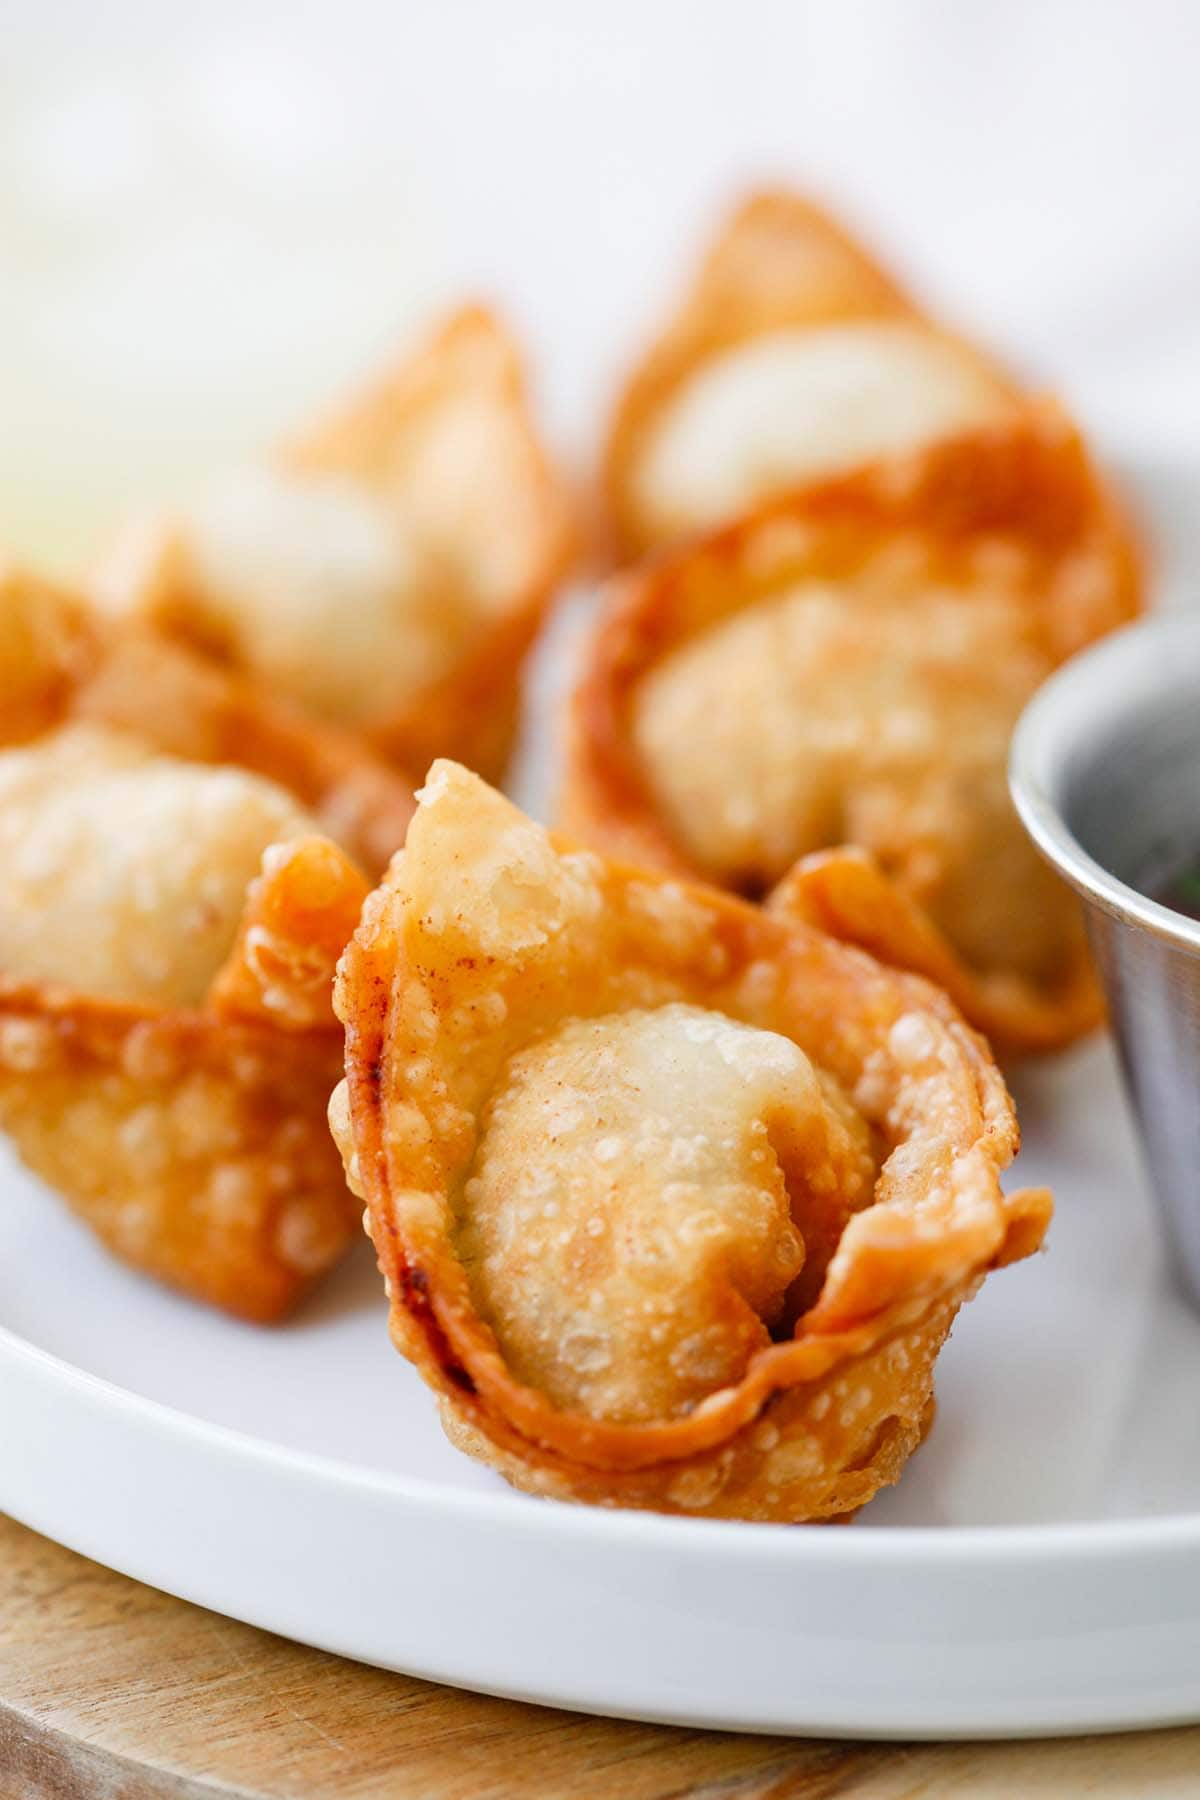 Perfectly brown fried wontons on serving dish with side of sweet and sour sauce.